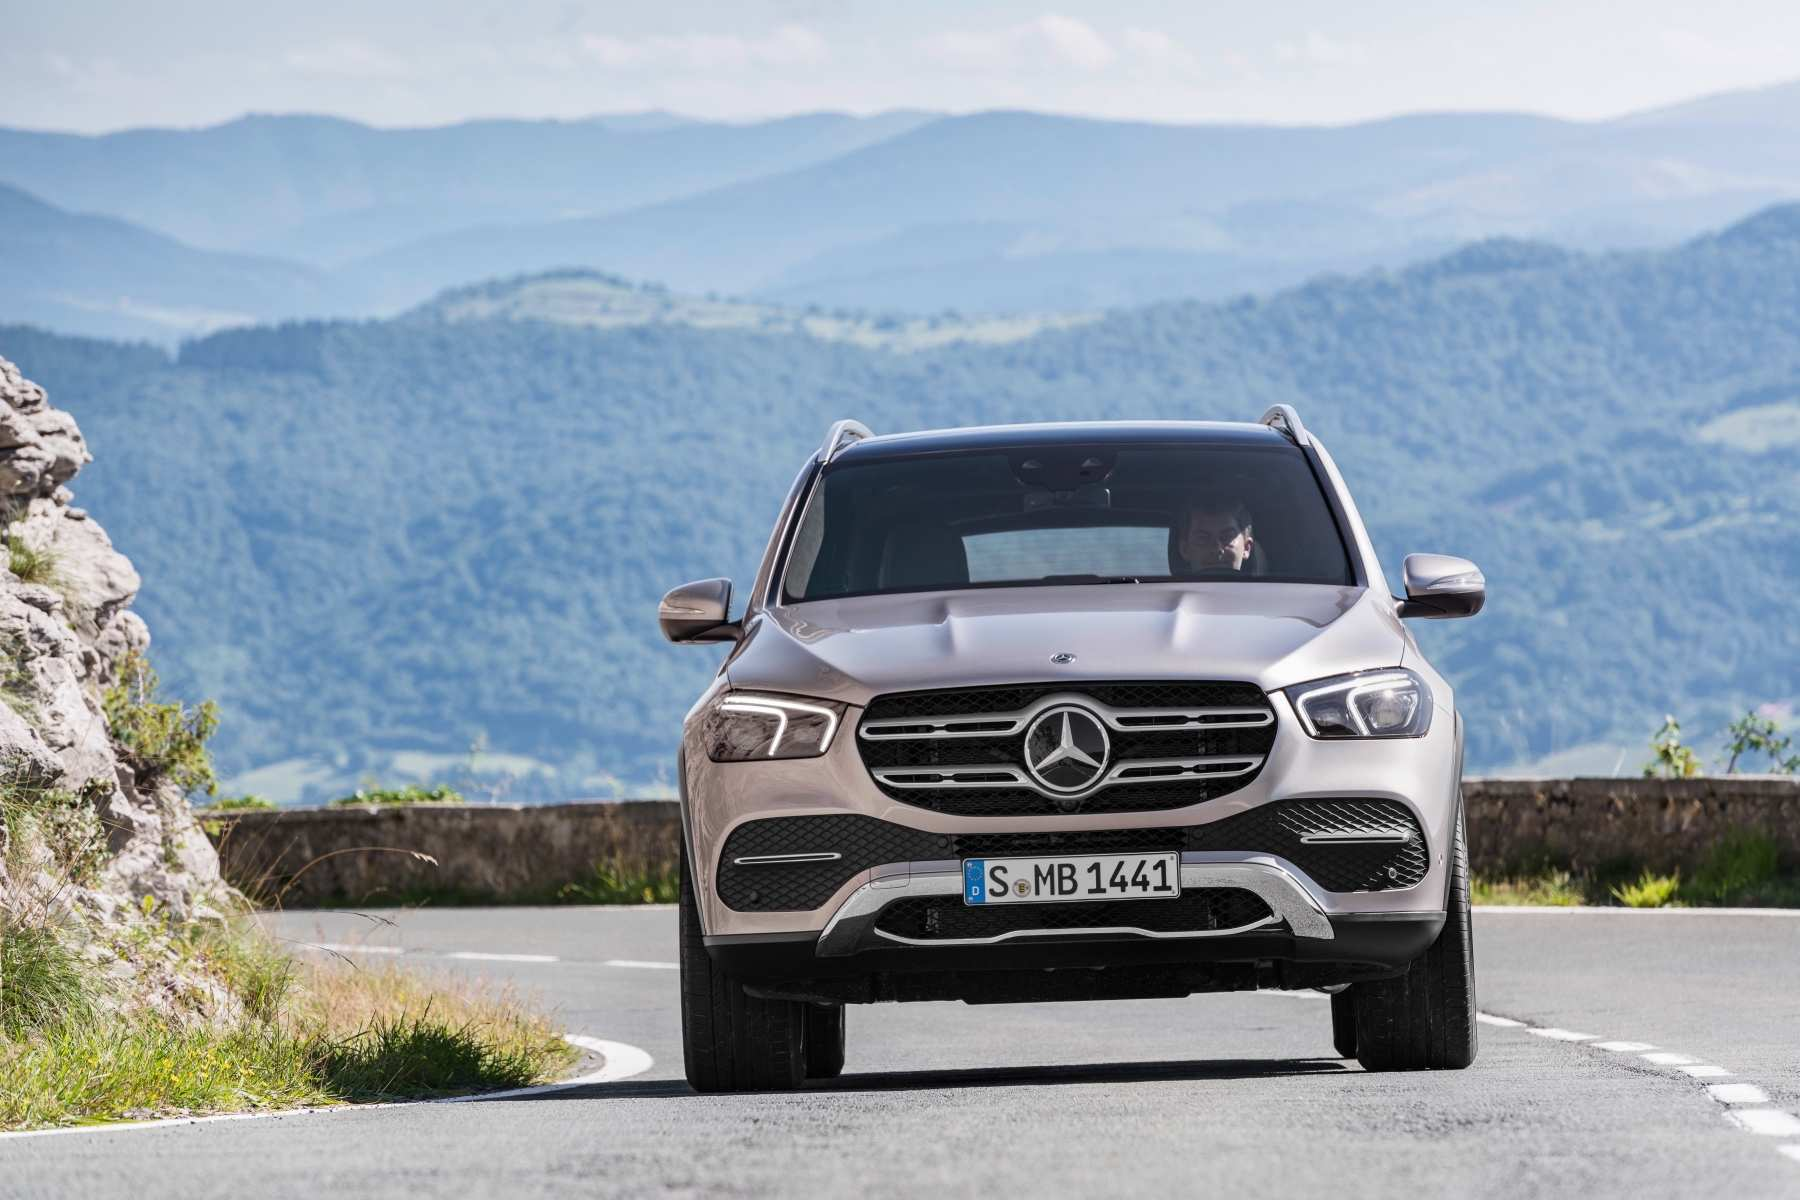 30 All New White Mercedes 2020 Pricing with White Mercedes 2020